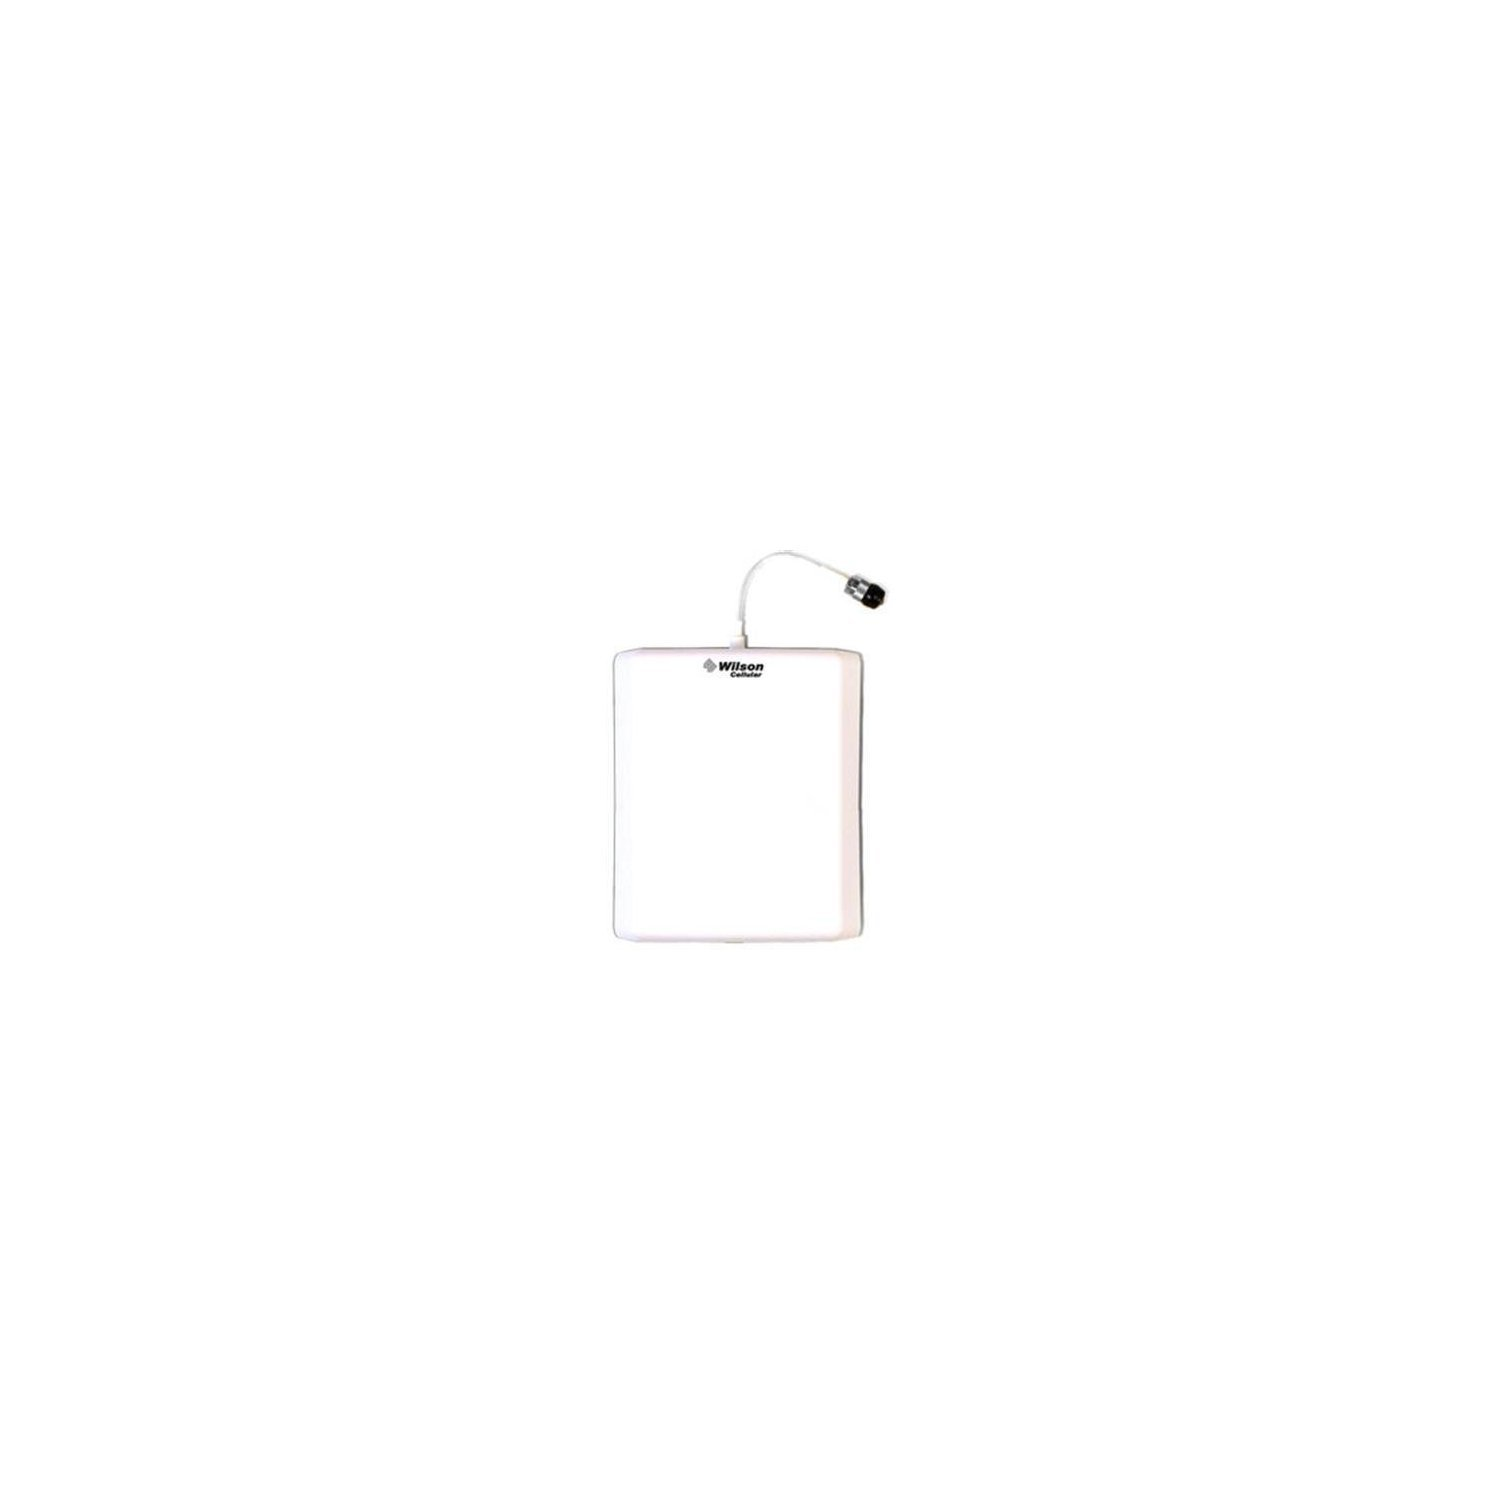 Wilson Electronics New 301155 Dual Band Antenna 10 Dbi F-Type Female Excellent Performance